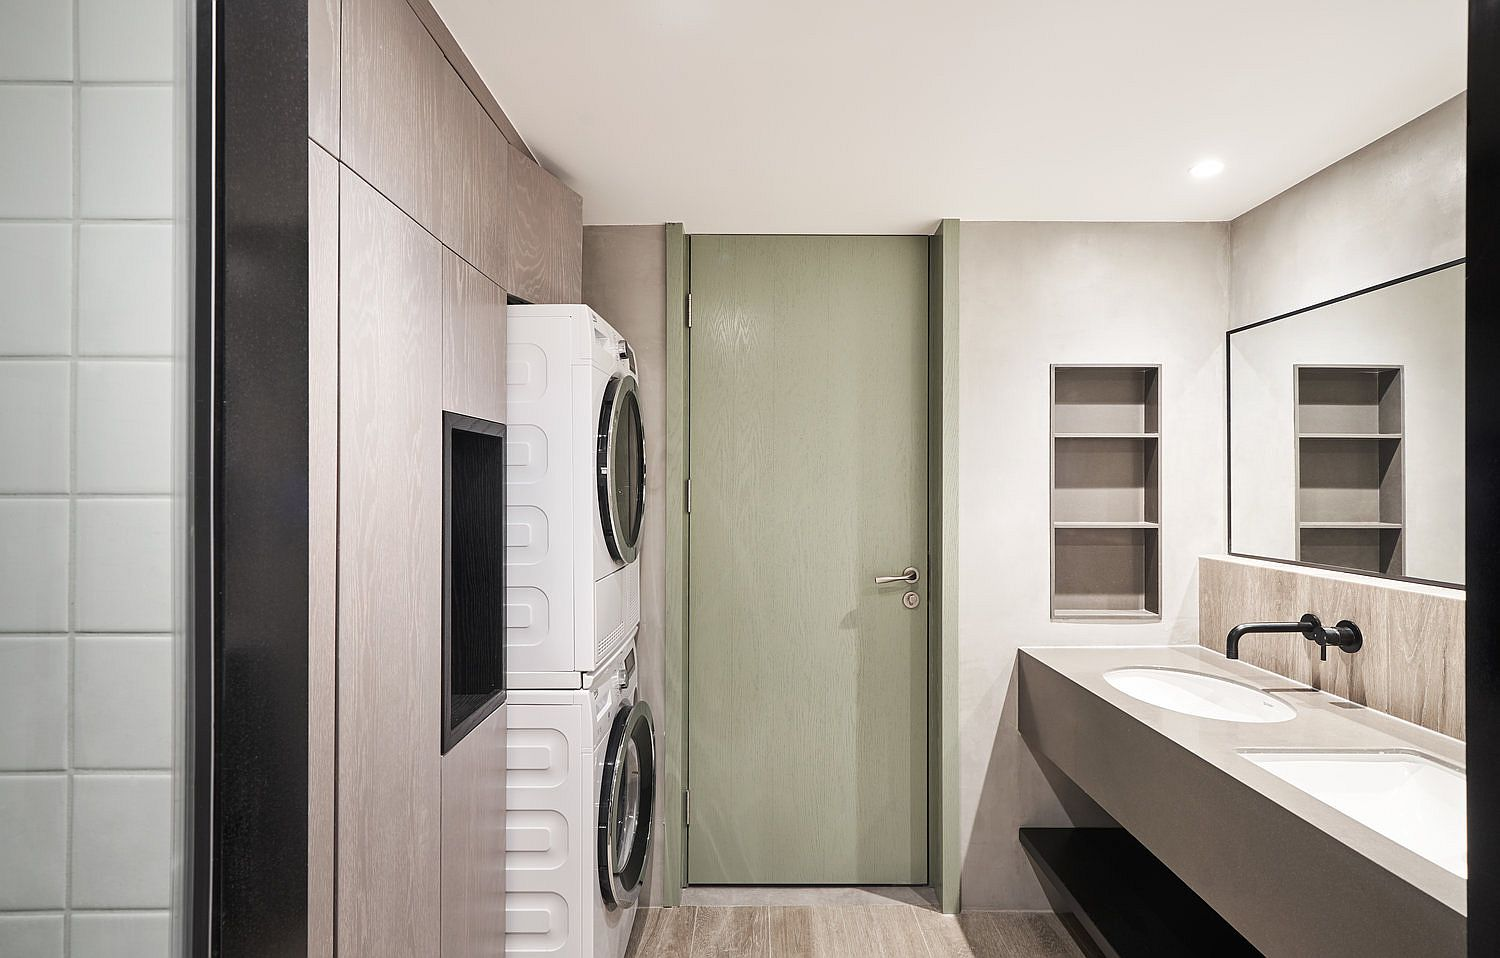 Combining-the-laundry-and-the-bathroom-designs-to-save-space